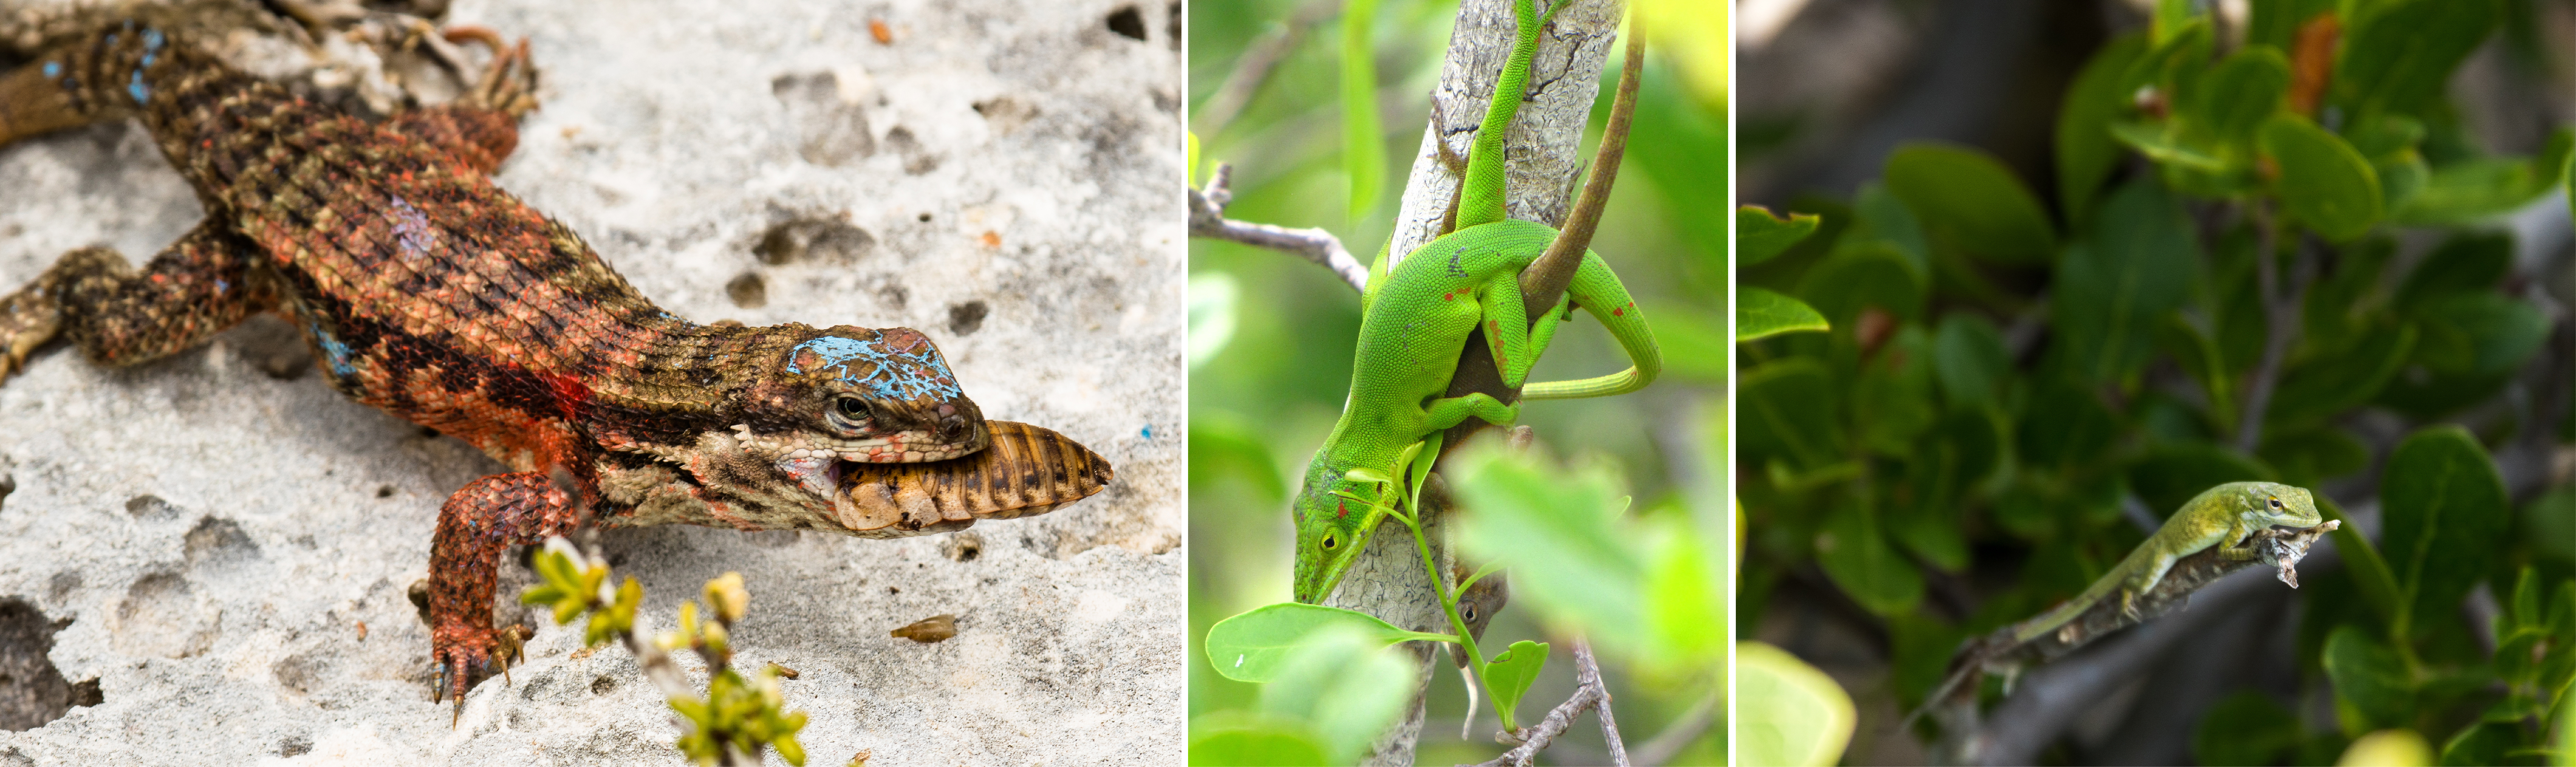 Curly-tail and green anoles